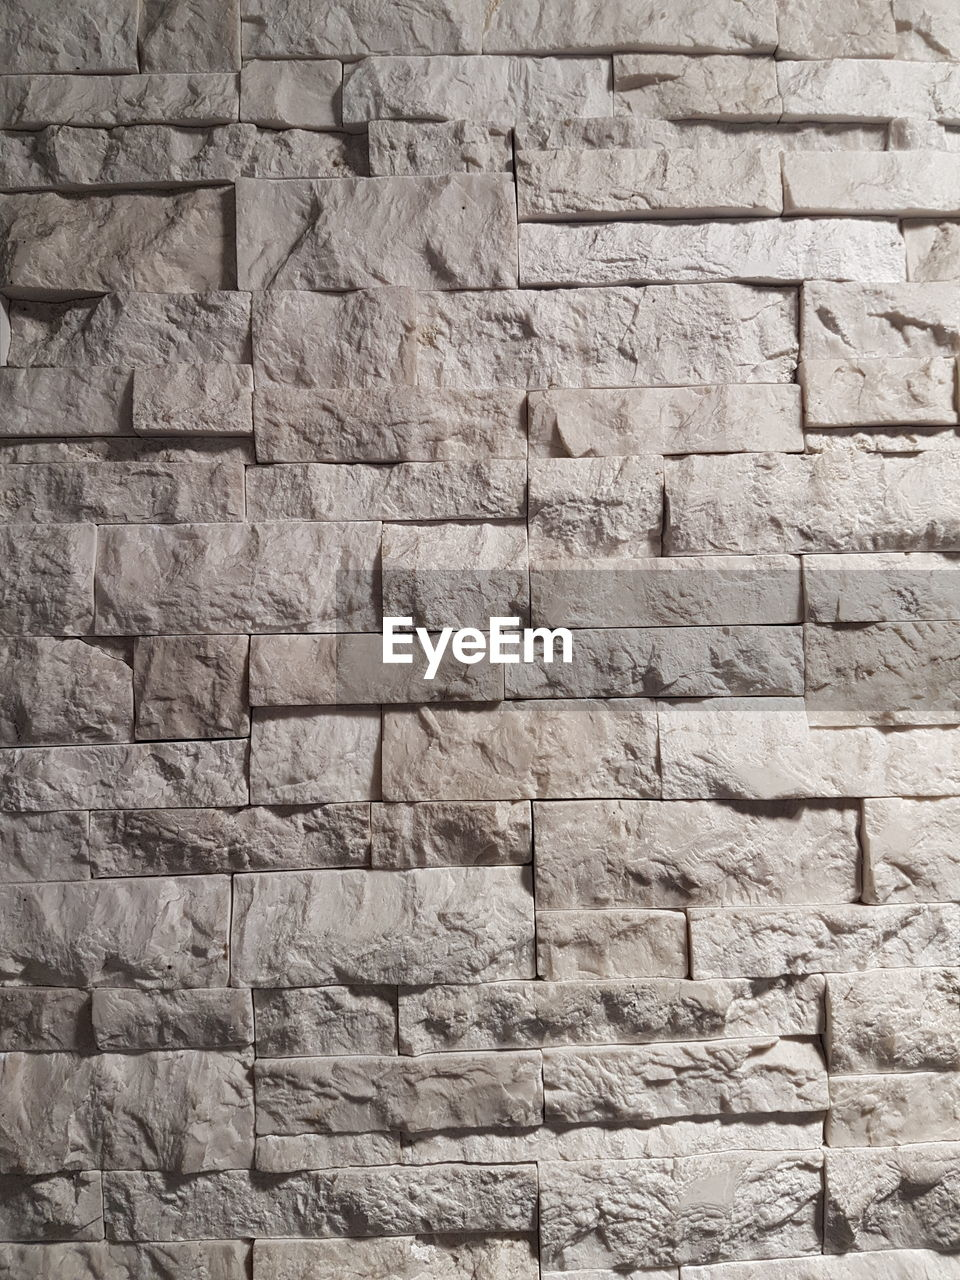 backgrounds, full frame, wall - building feature, textured, pattern, built structure, wall, architecture, stone wall, no people, brick, rough, day, brick wall, close-up, solid, outdoors, old, building exterior, stone material, textured effect